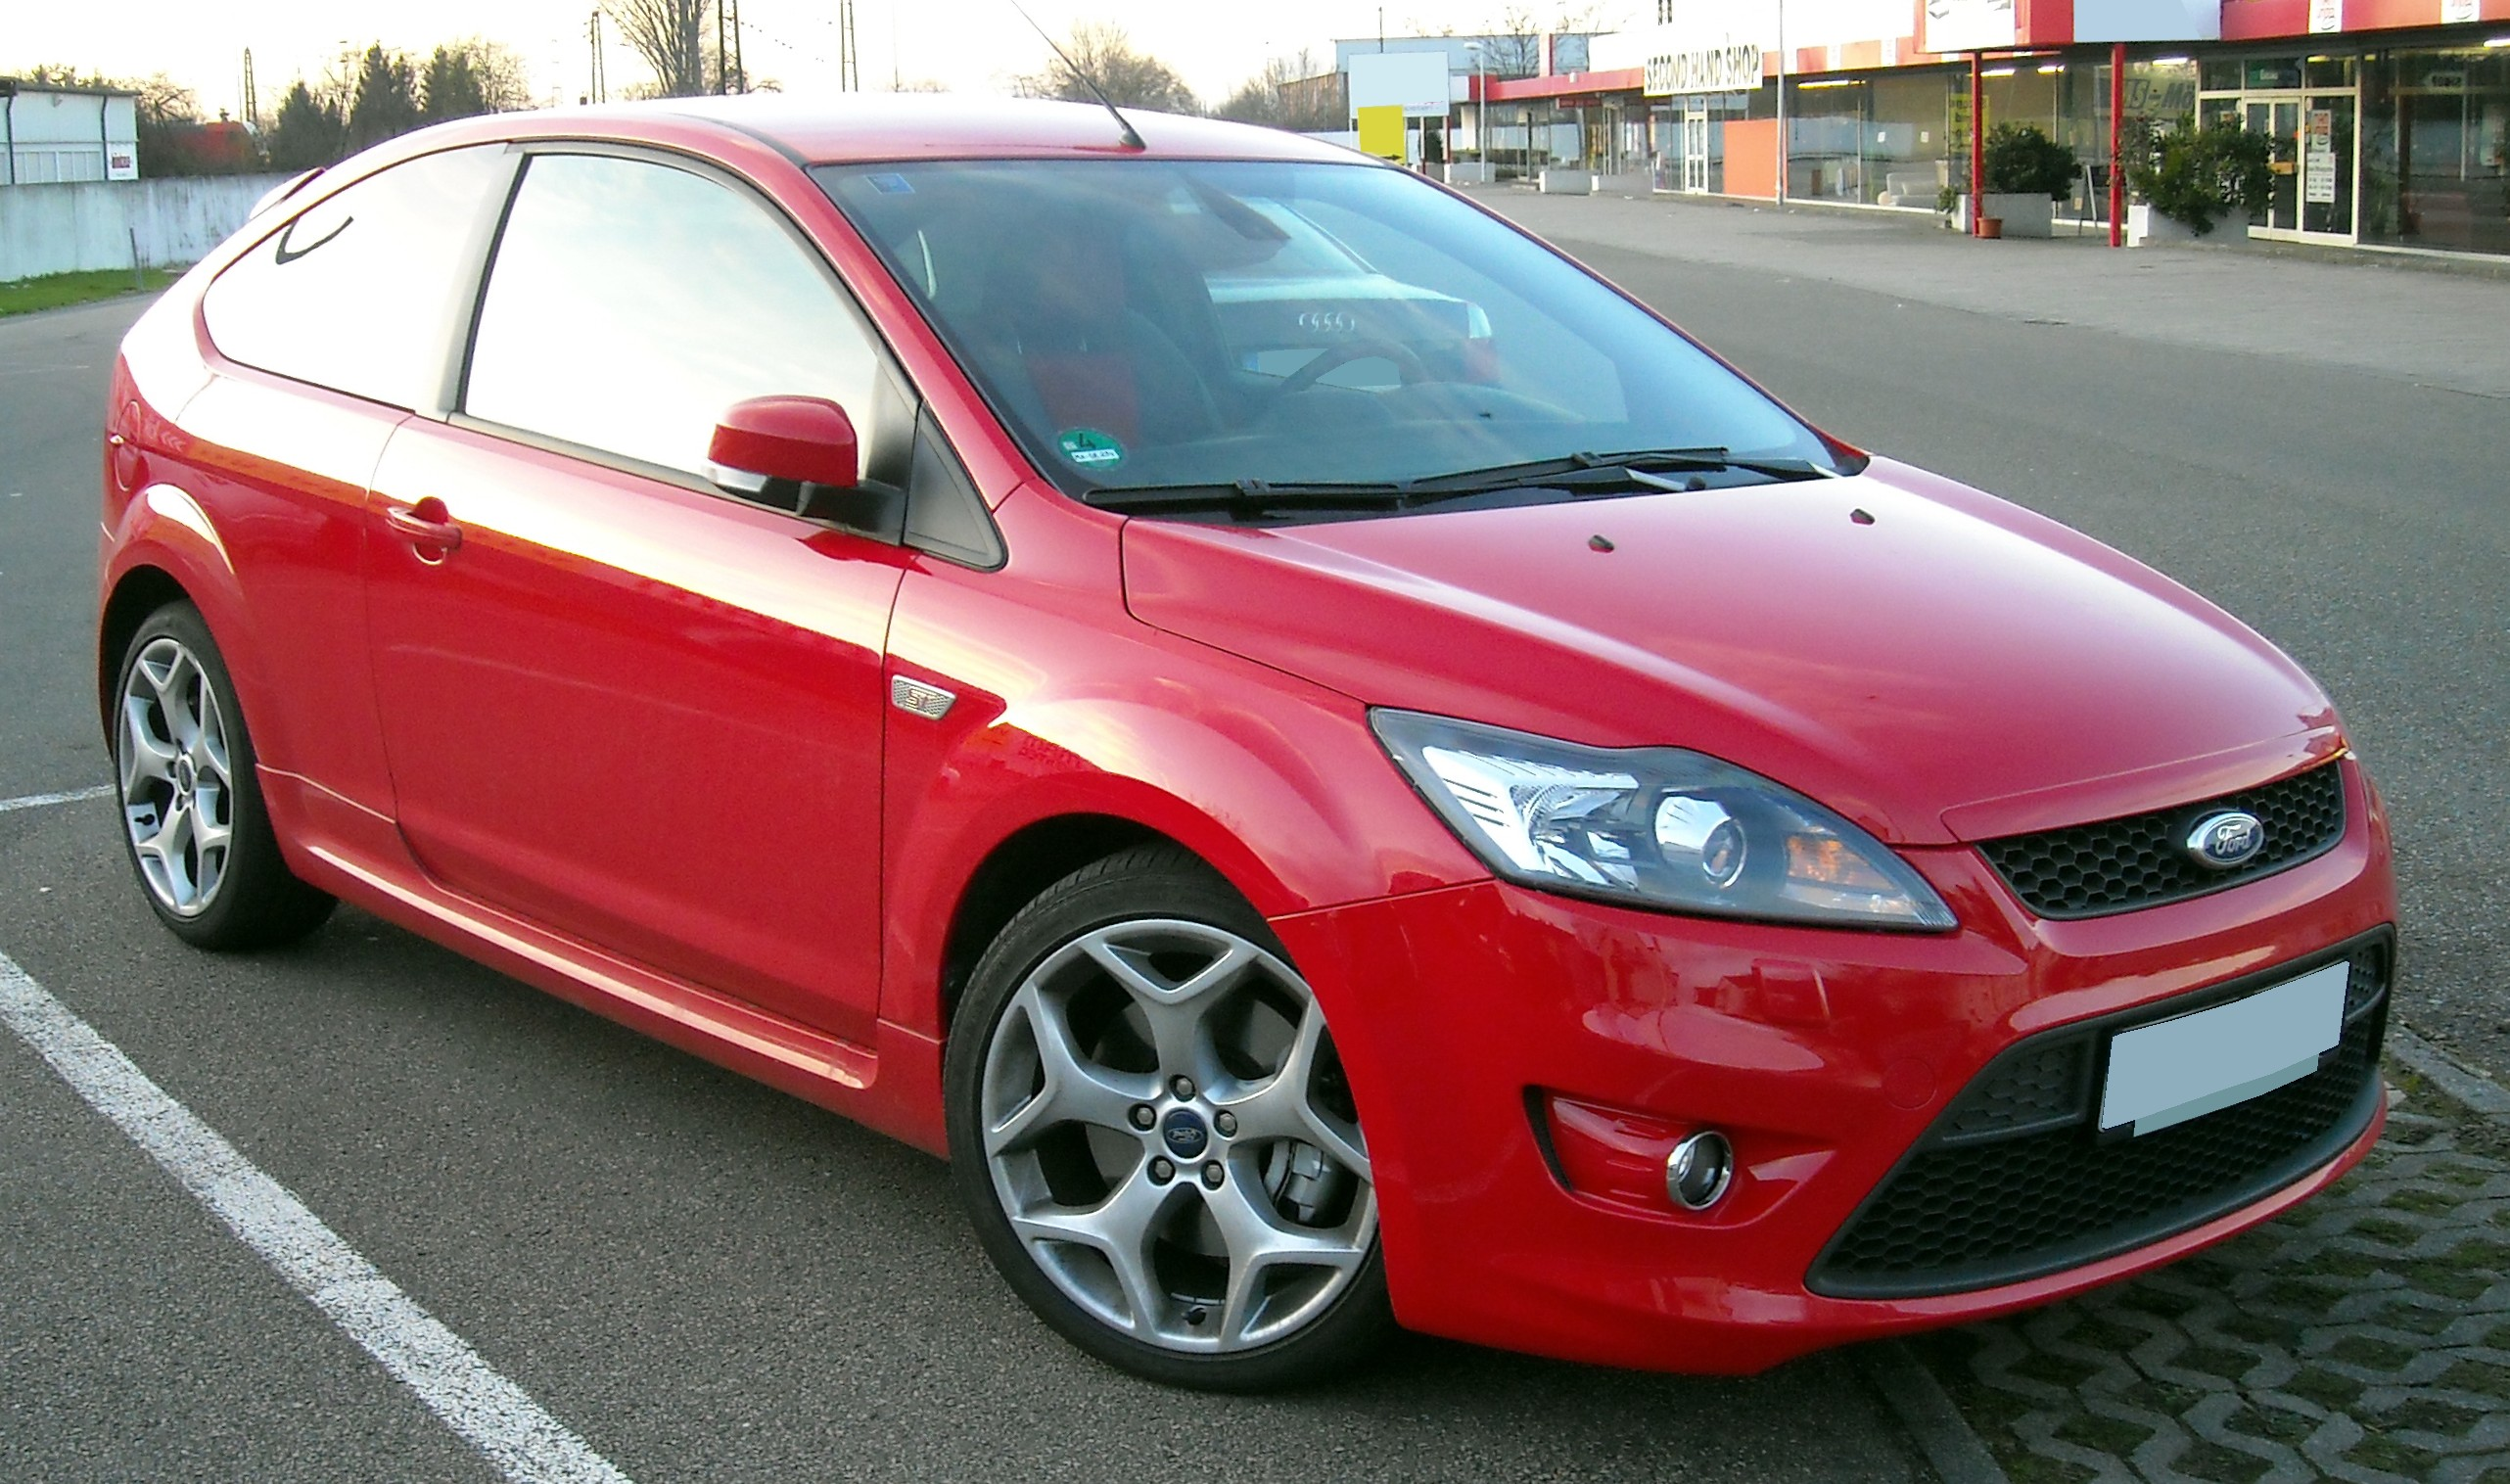 Description Ford Focus ST front 20081130.jpg